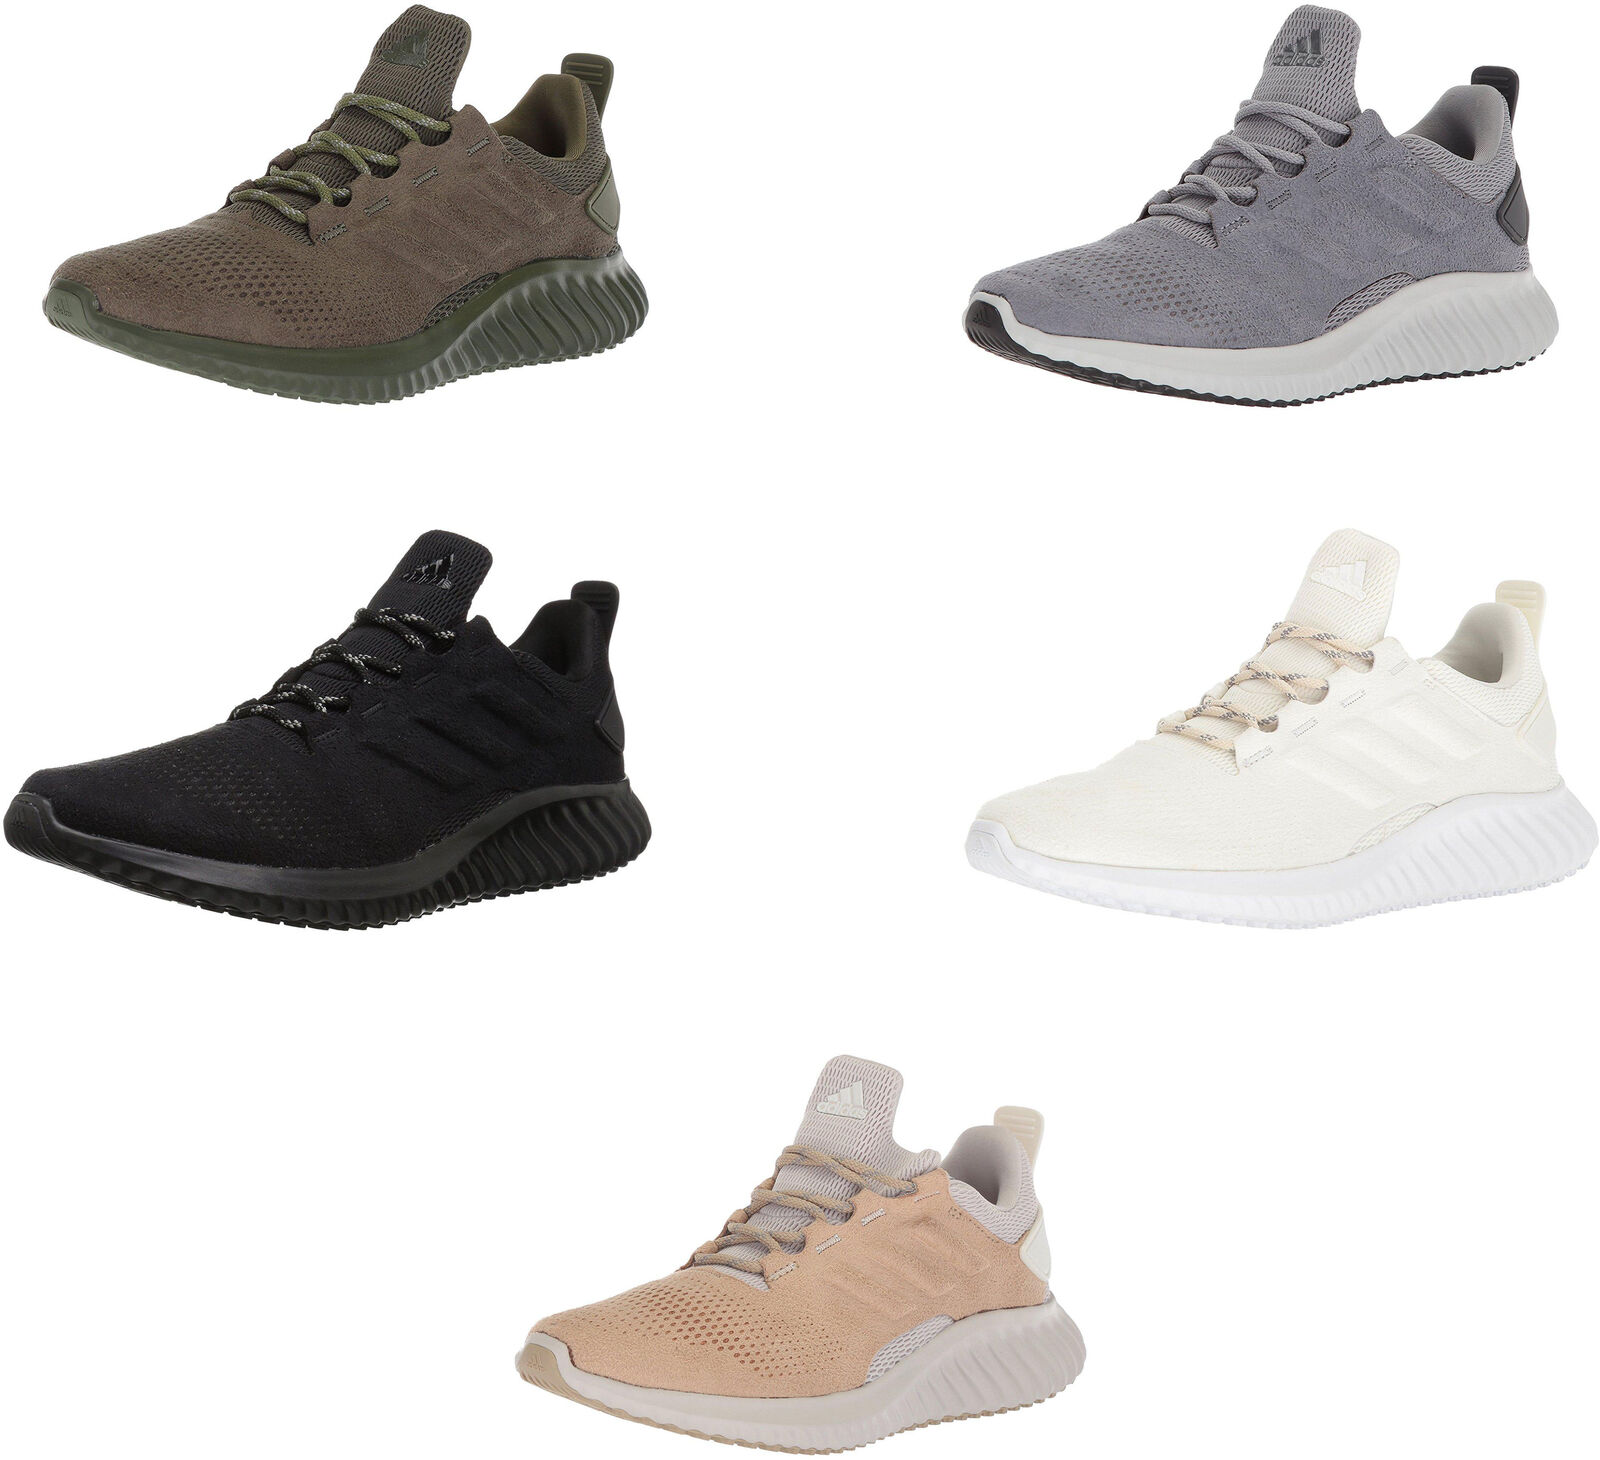 Adidas Performance Men's Alphabounce CR Running shoes, 5 colors